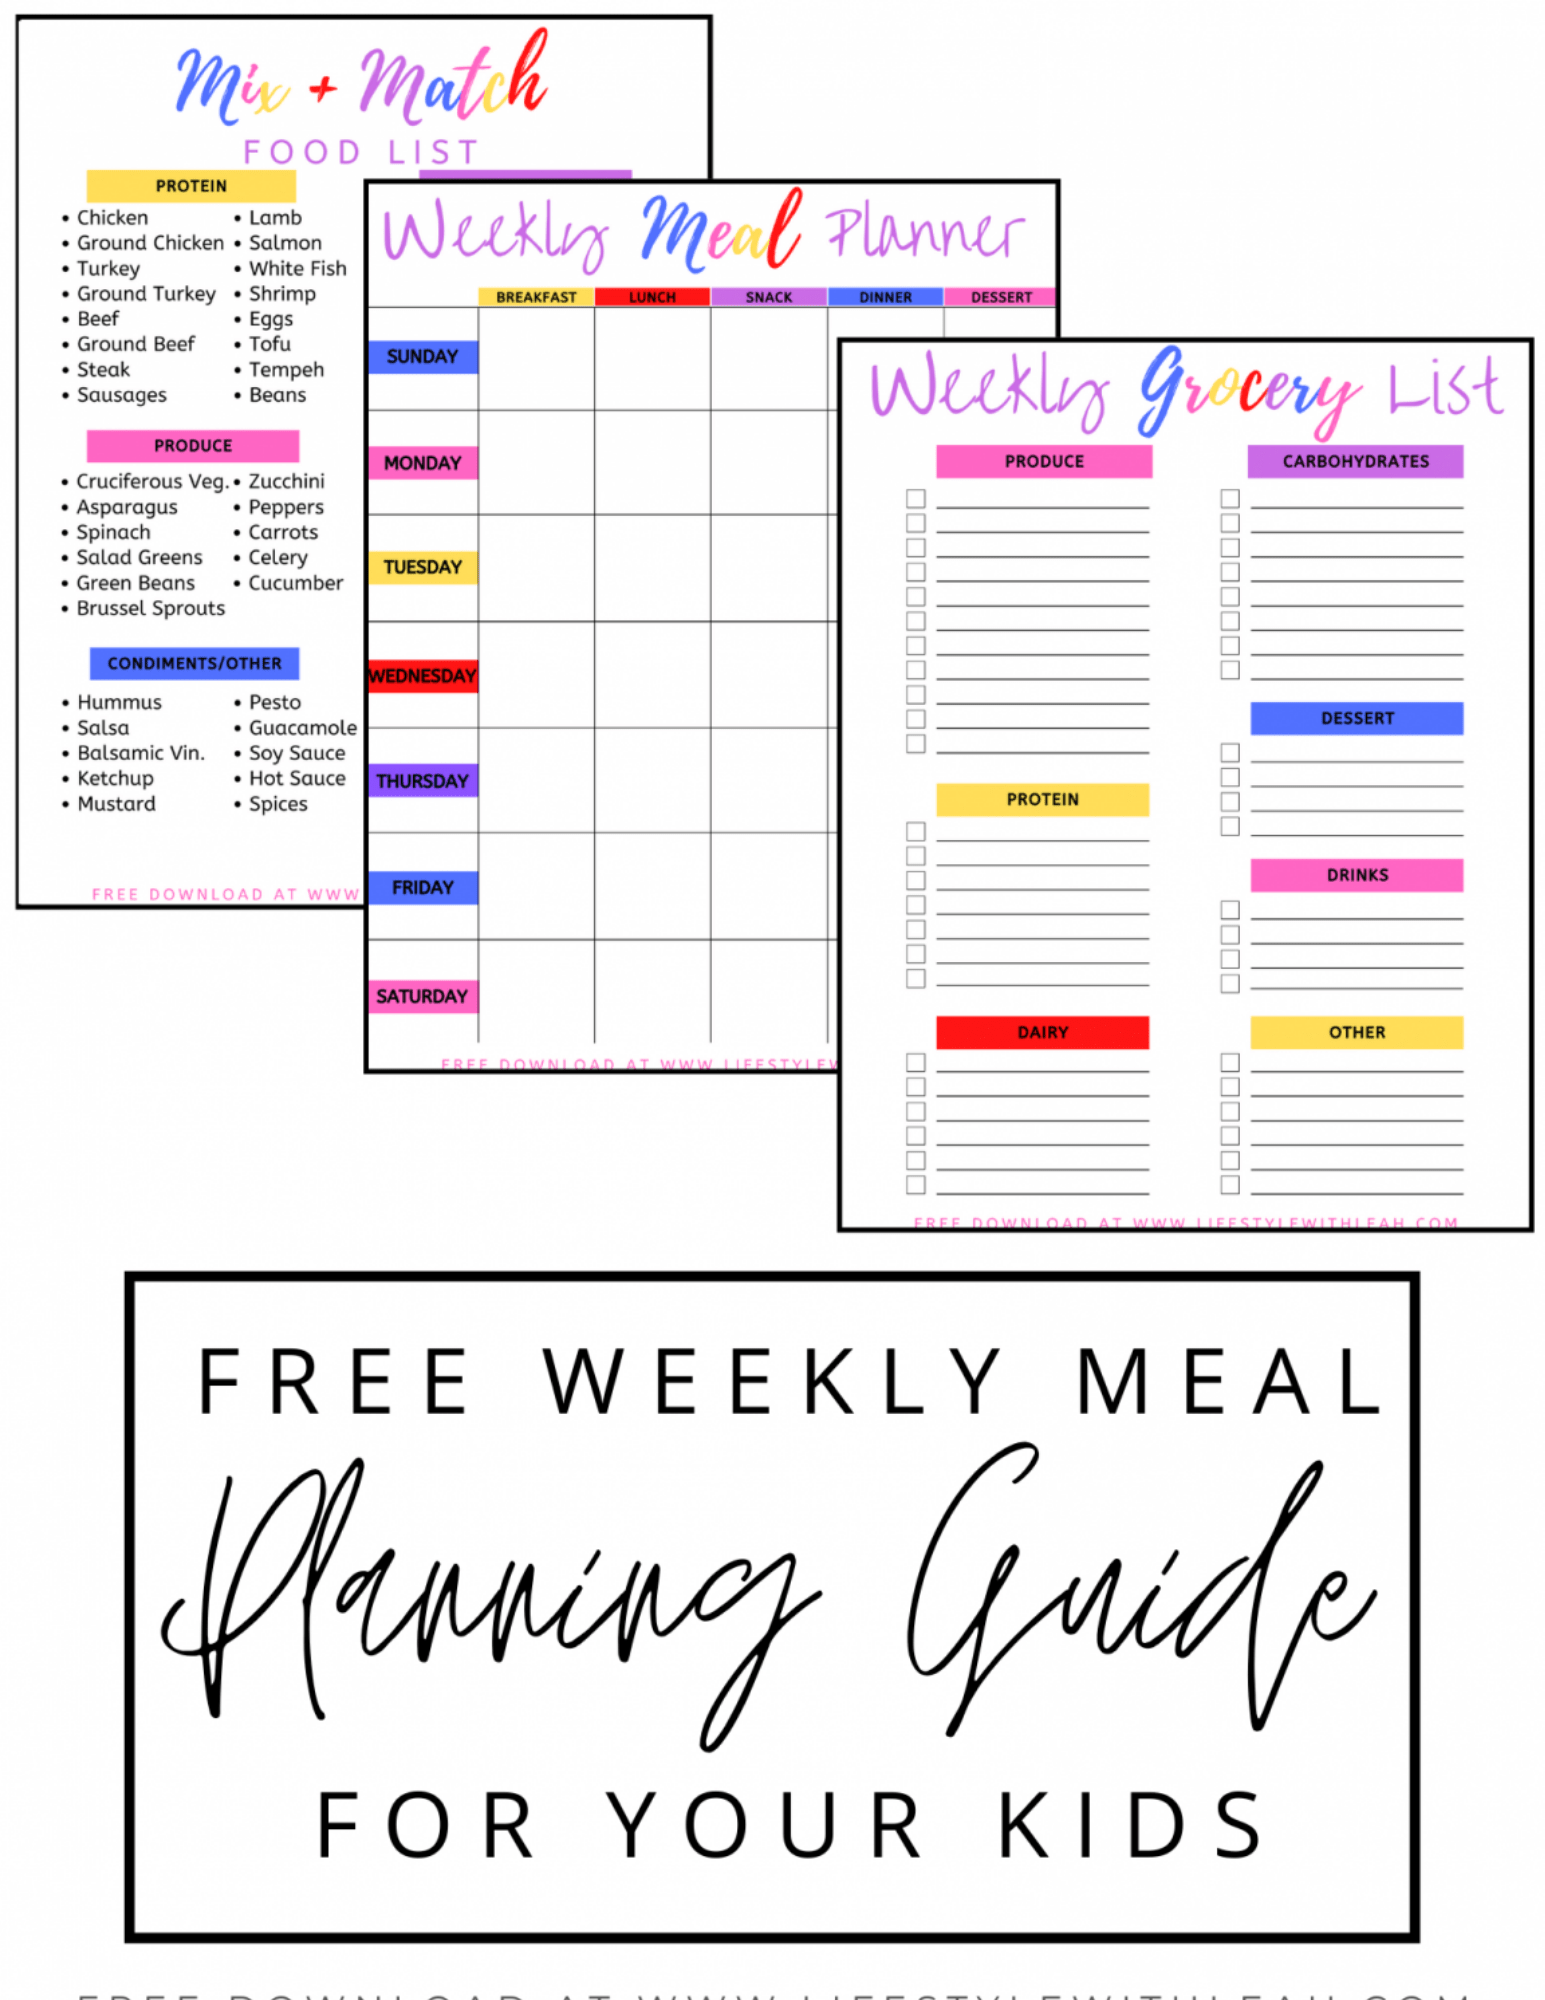 Meal Planning Guide for Kids